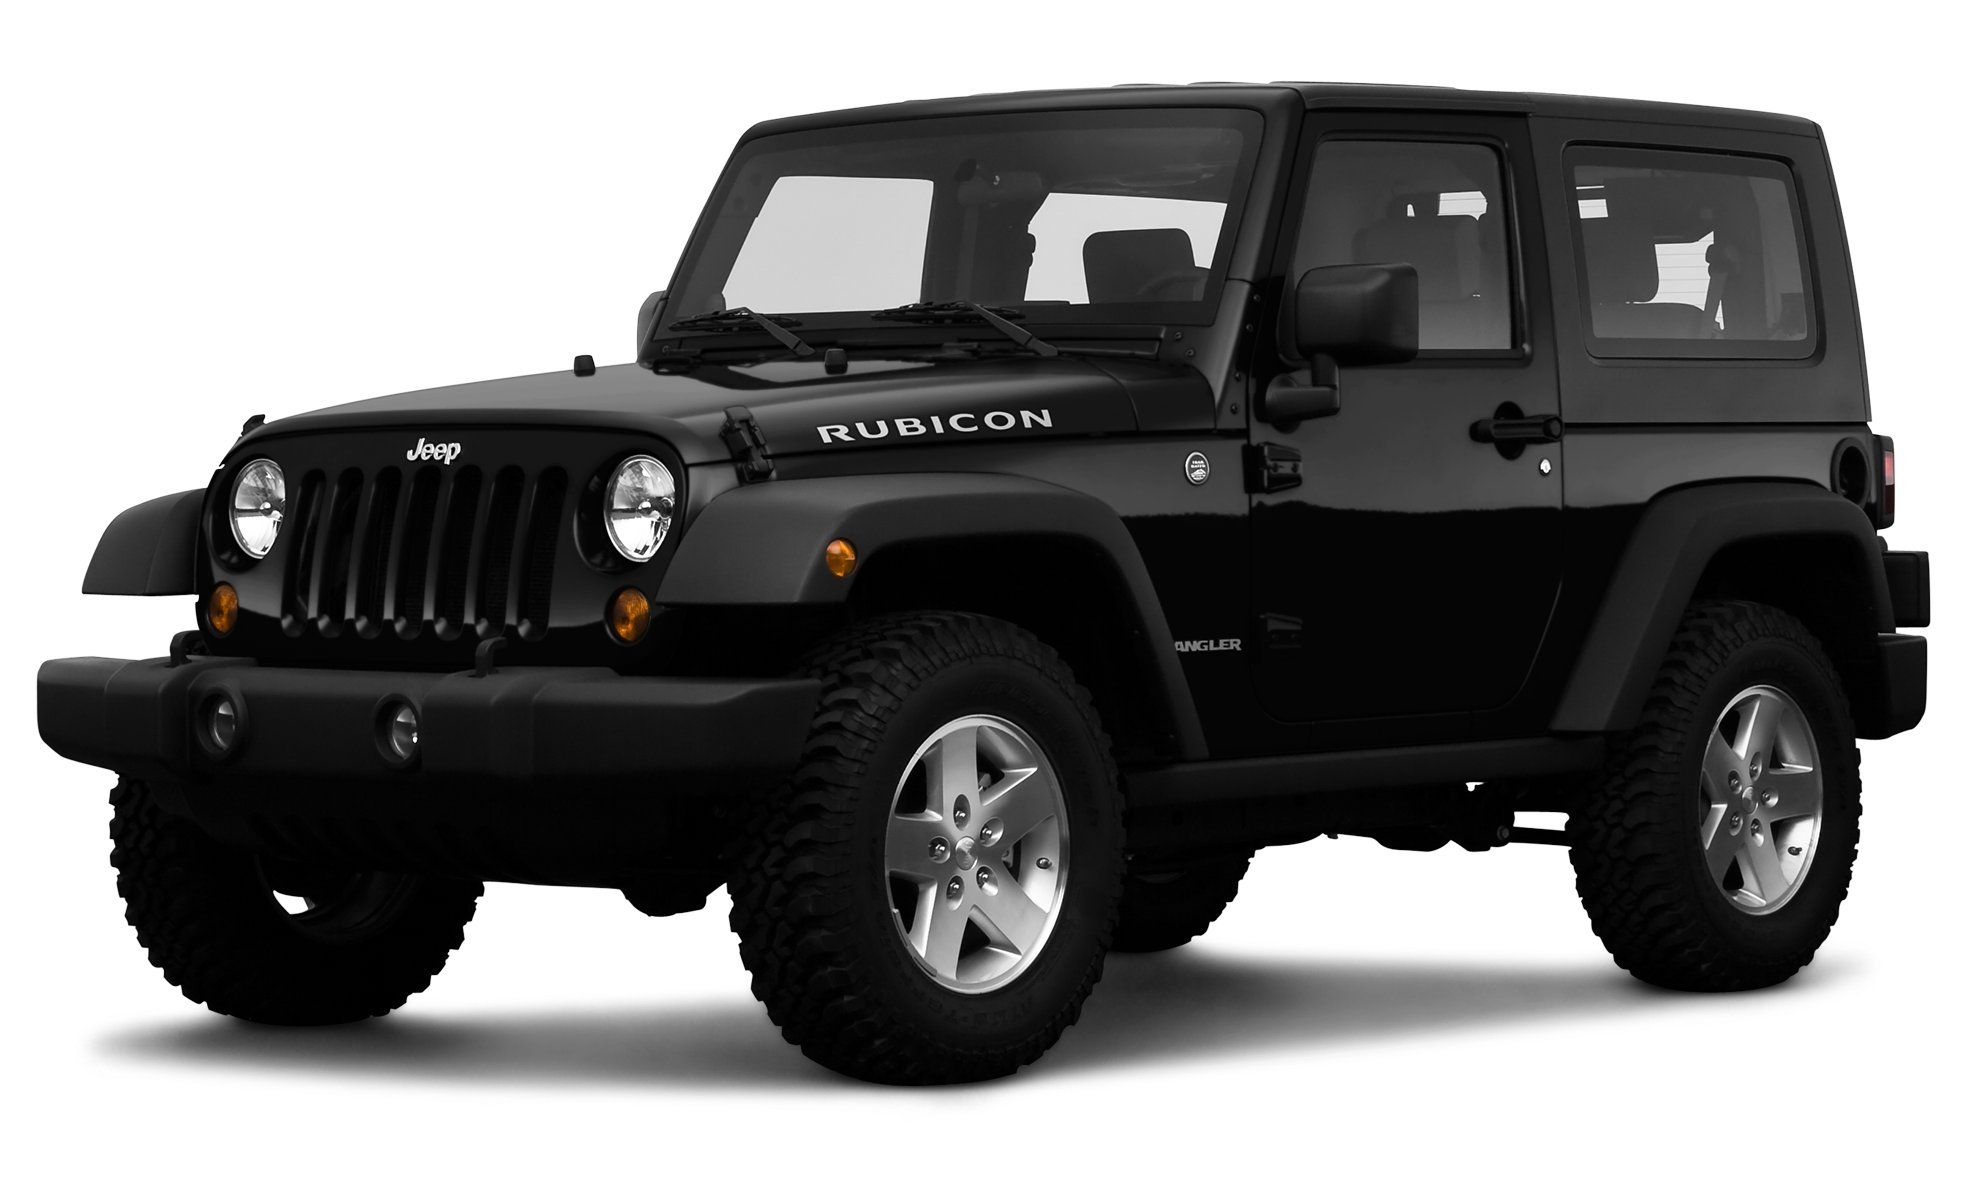 2009 jeep wrangler rubicon 4 wheel drive 2 door